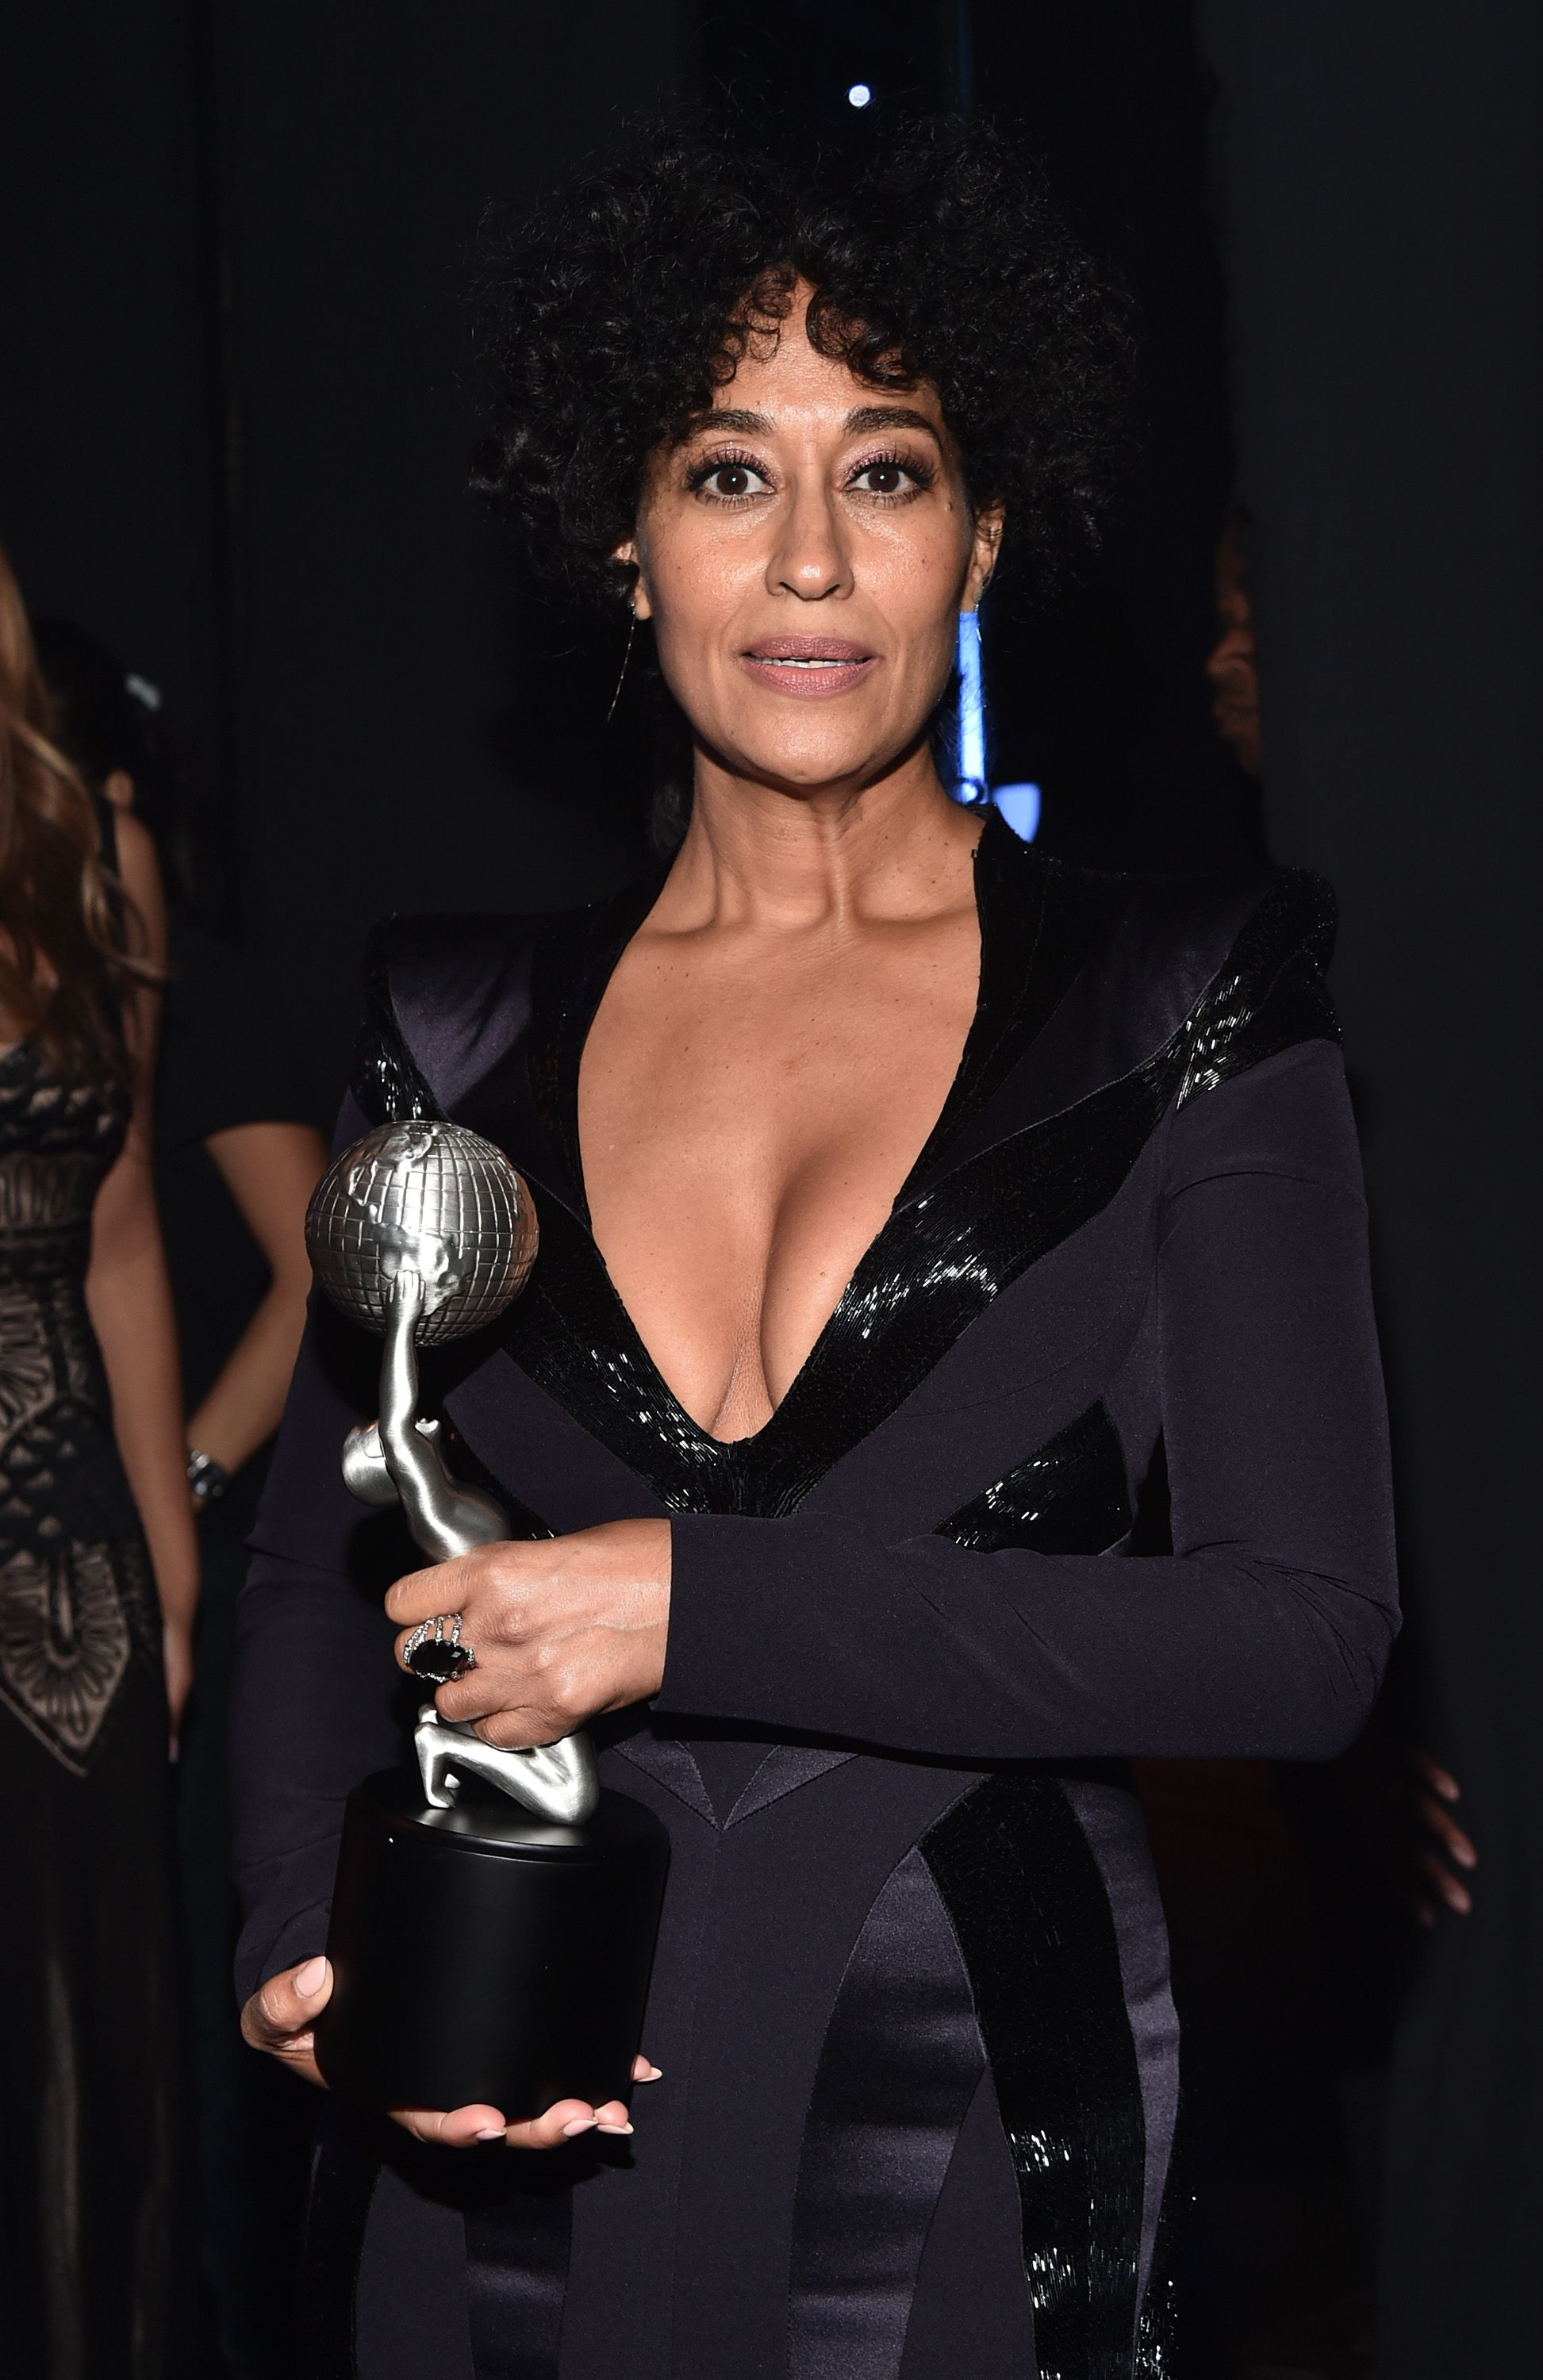 Tracee Ellis Ross at the NAACP Image Awards on February 5, 2016 in Pasadena.   Photo: Getty Images